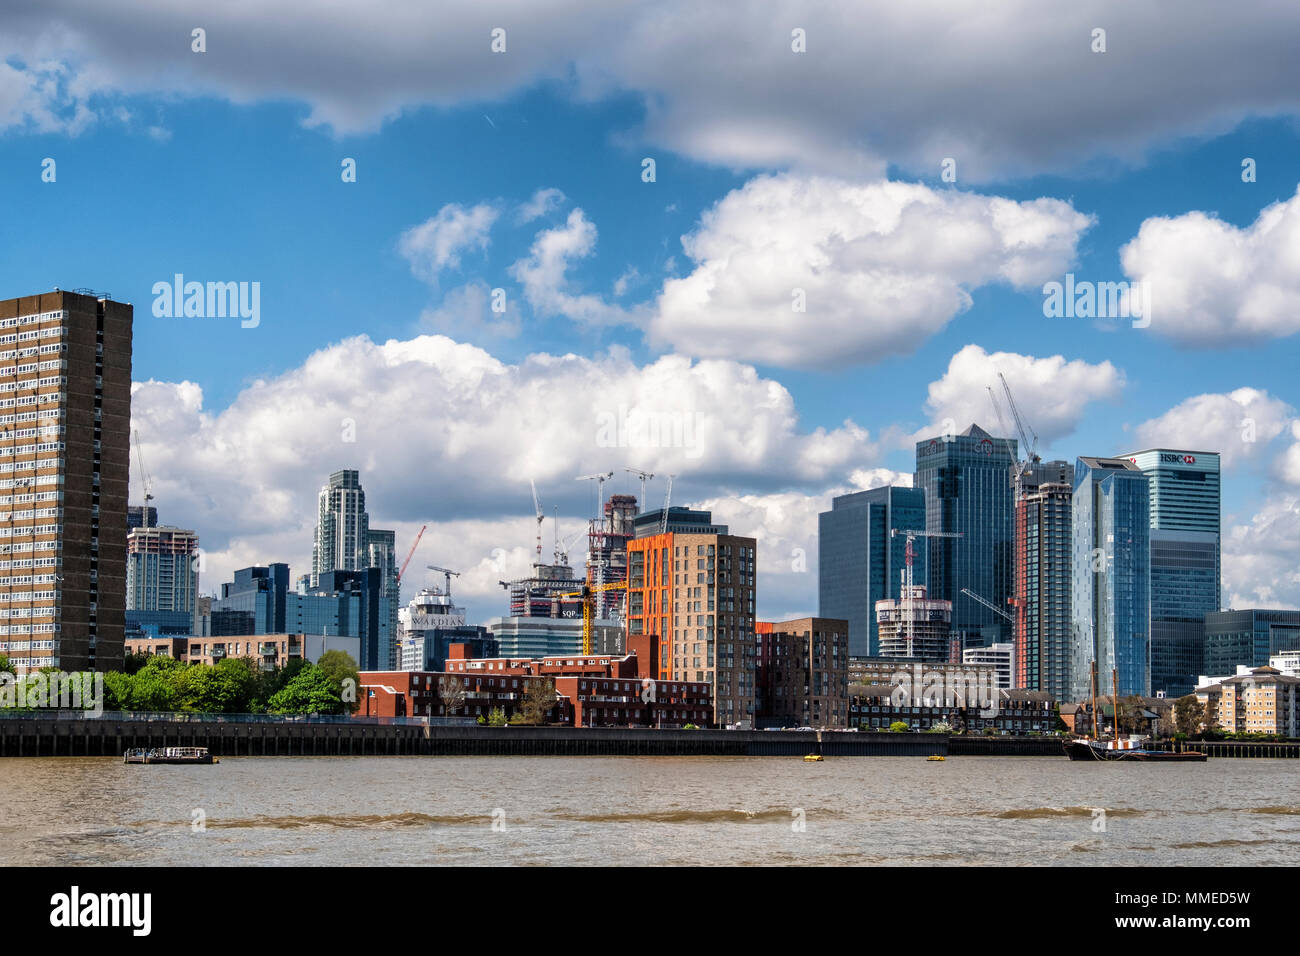 London, Isle of Dogs City skyline view. New-build luxury apartment buildings under construction and Canary Wharf Financial district - Stock Image